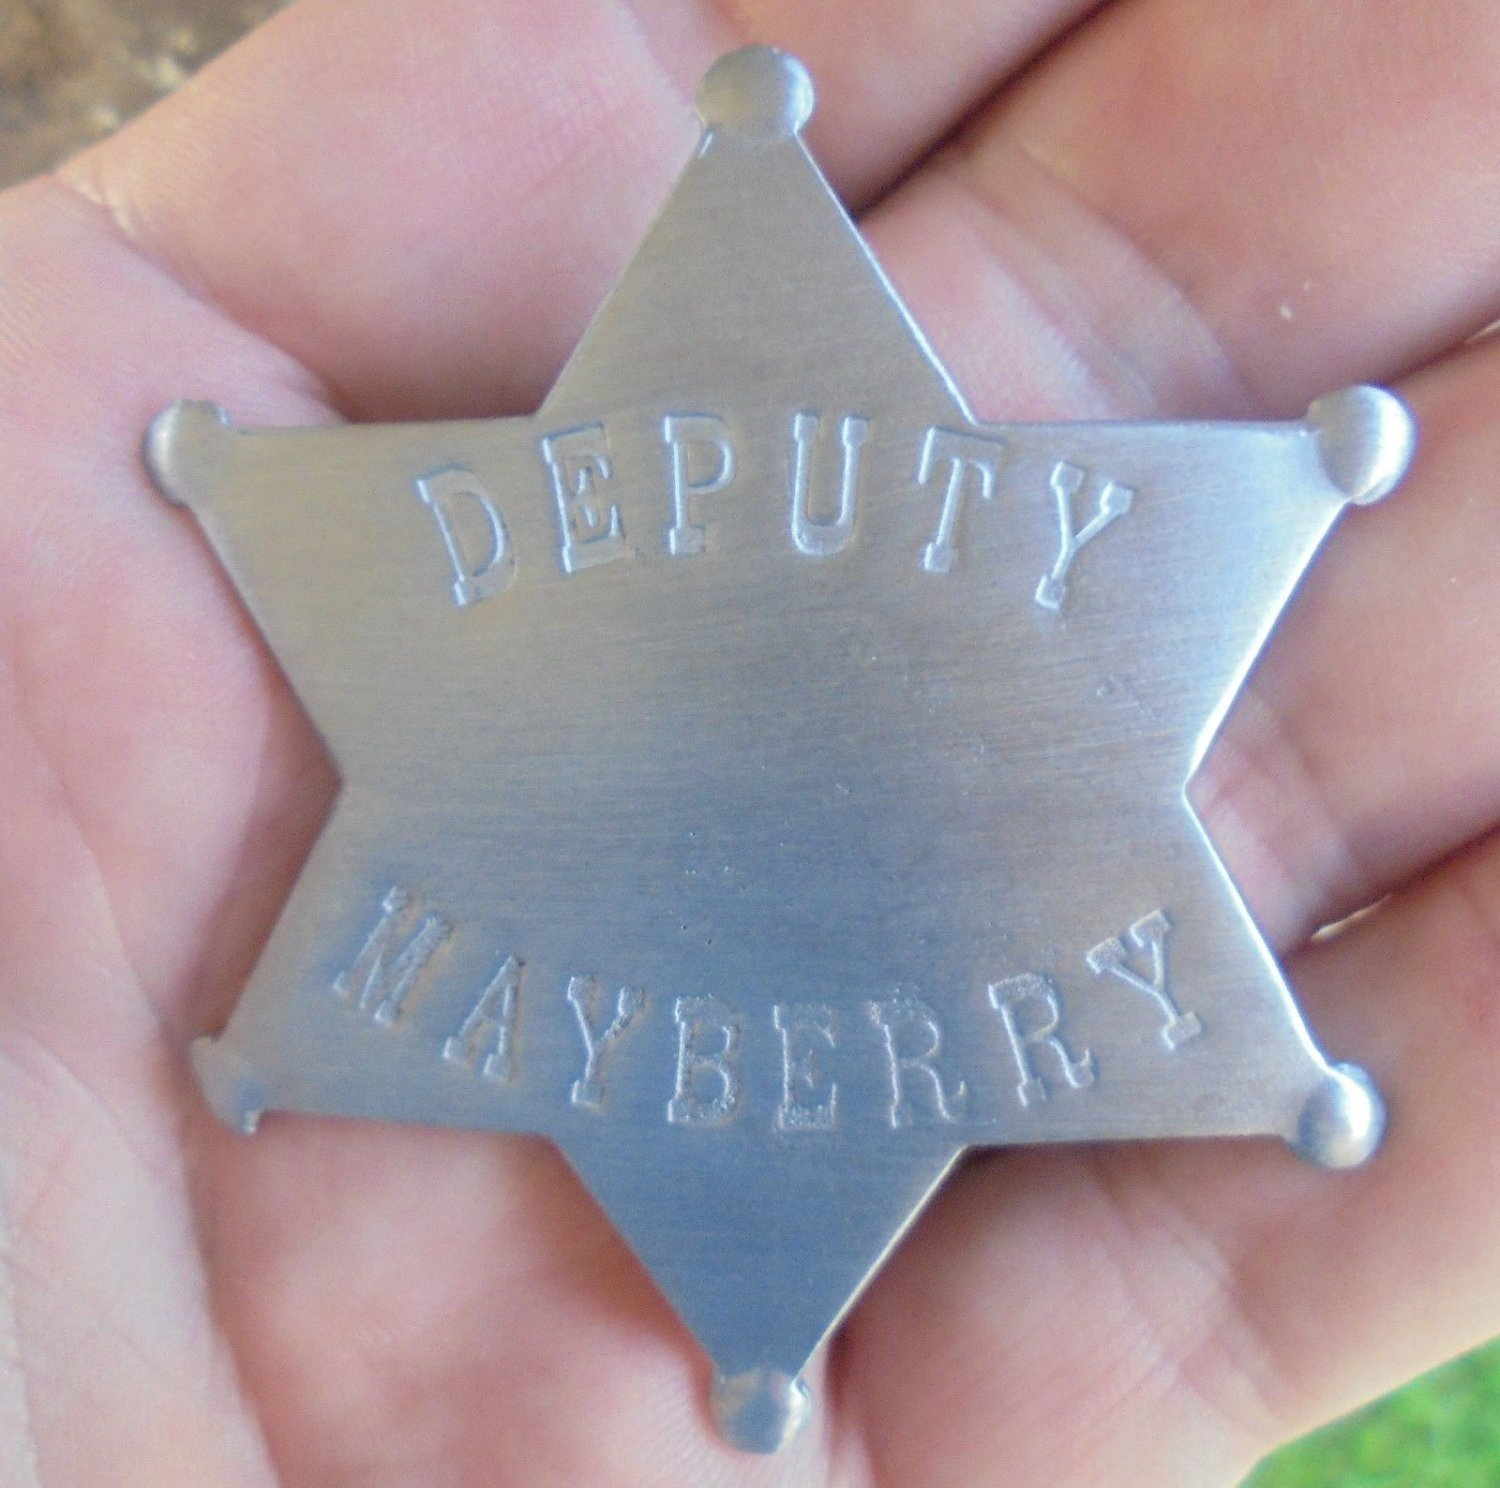 Andy Griffith TV Show - Mayberry Deputy Sheriff Badge Prop Replica (Brand New)